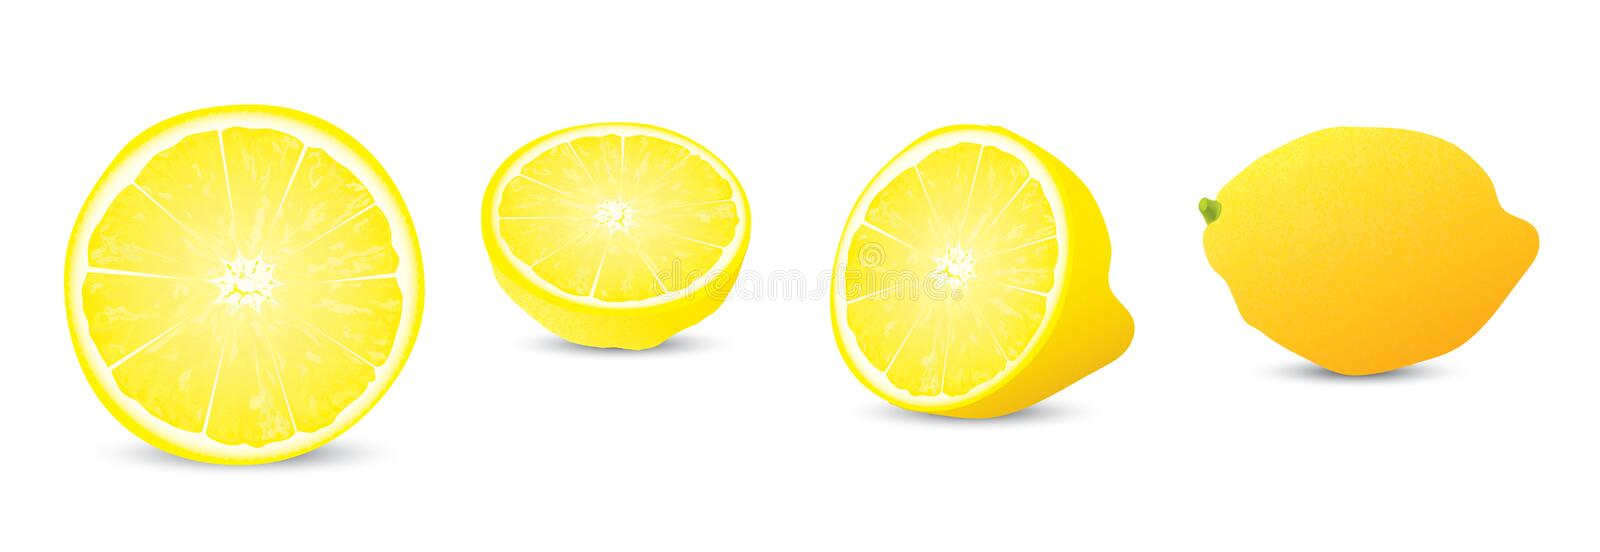 Download Lemon Illustration Collection Stock Illustration - Illustration: 18894184